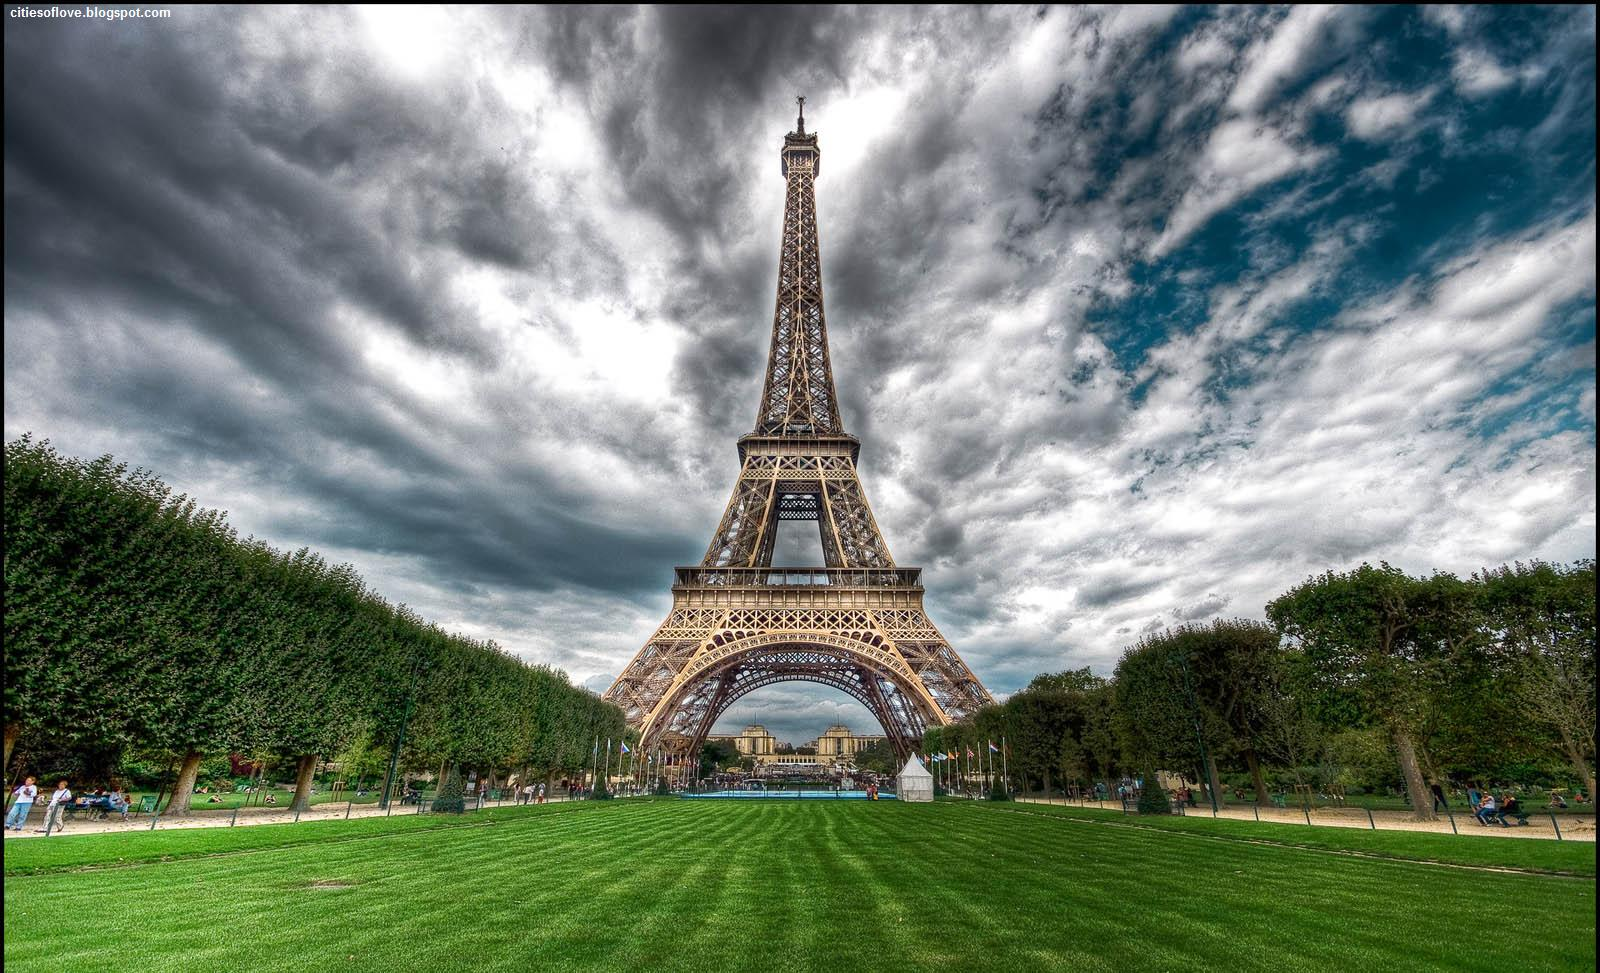 Free Download Paris Eiffel Tower France Wonderful And Magical Ambiance Hd Desktop 1600x973 For Your Desktop Mobile Tablet Explore 46 Paris Eiffel Tower Hd Wallpaper Eiffel Tower Wallpapers Eiffel